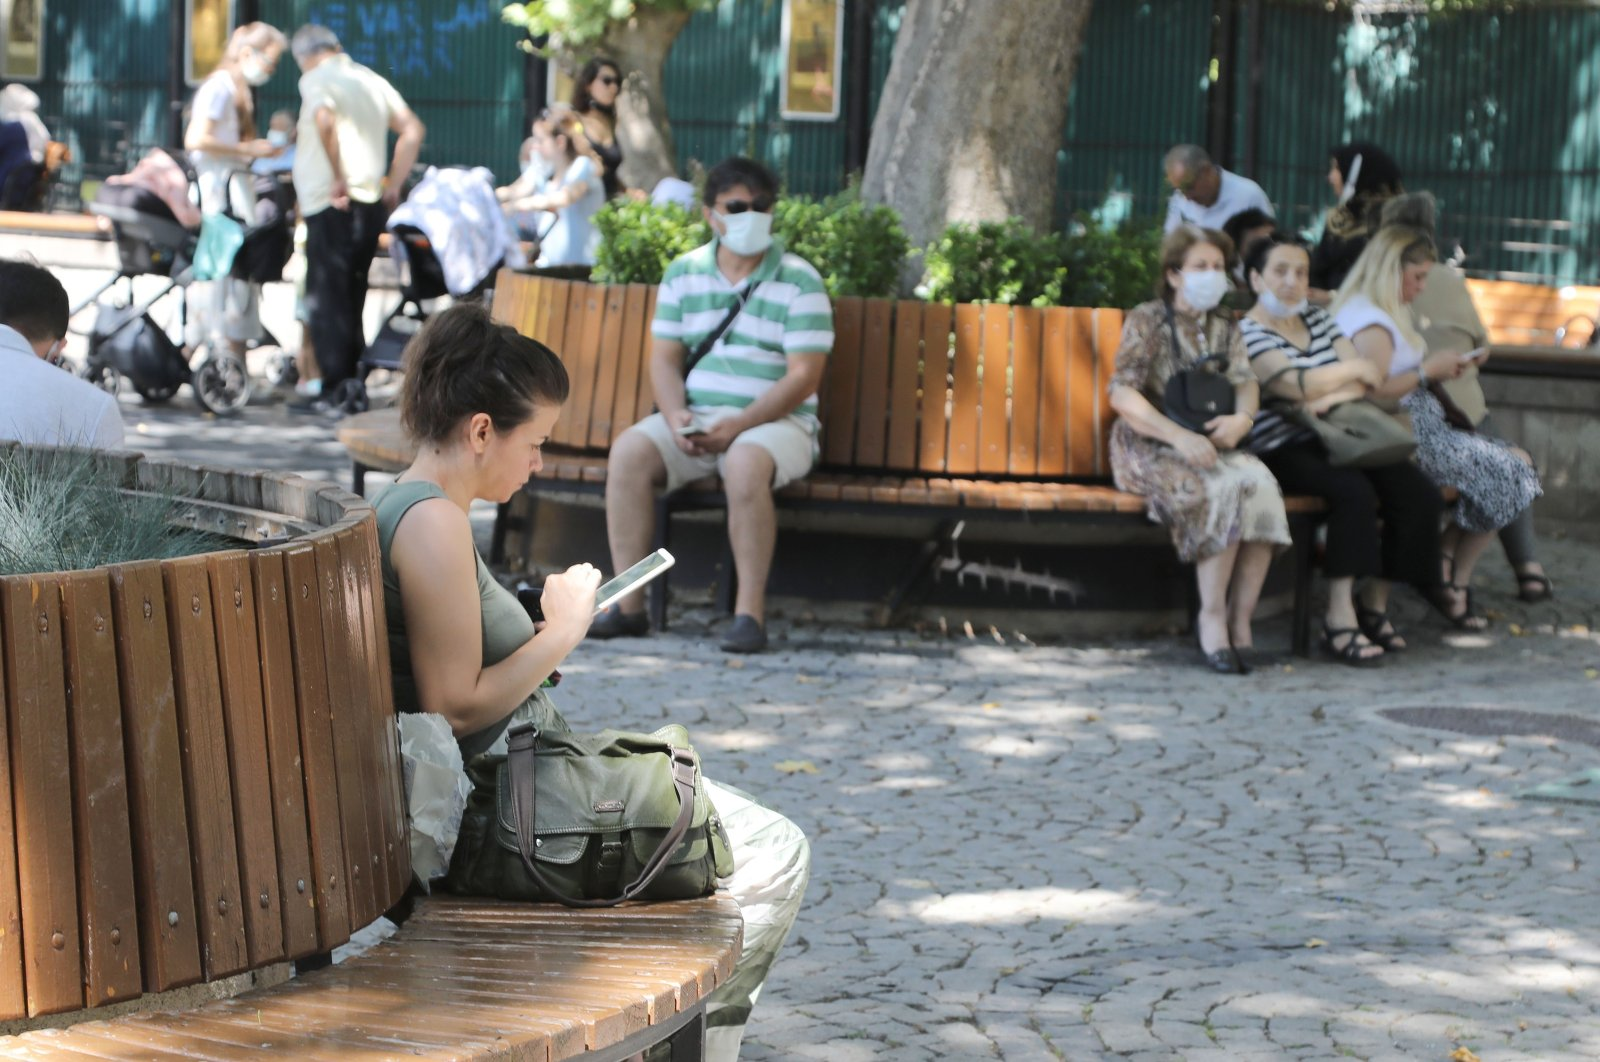 Rate of internet users in Turkey rises to 82.6%